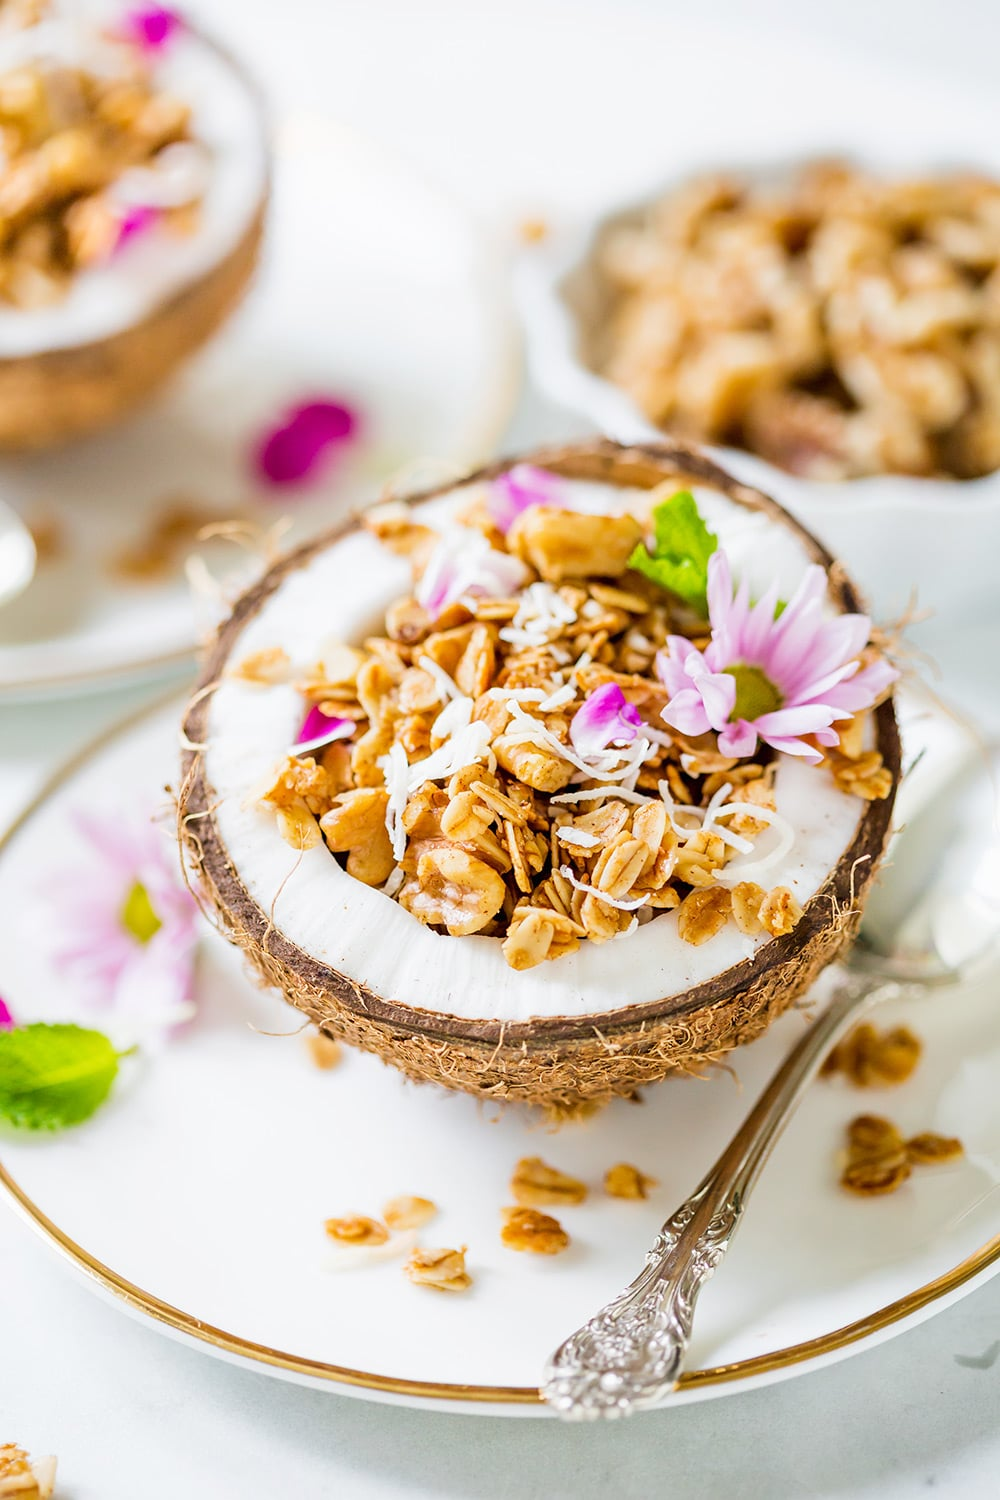 Homemade Coconut Walnut Granola